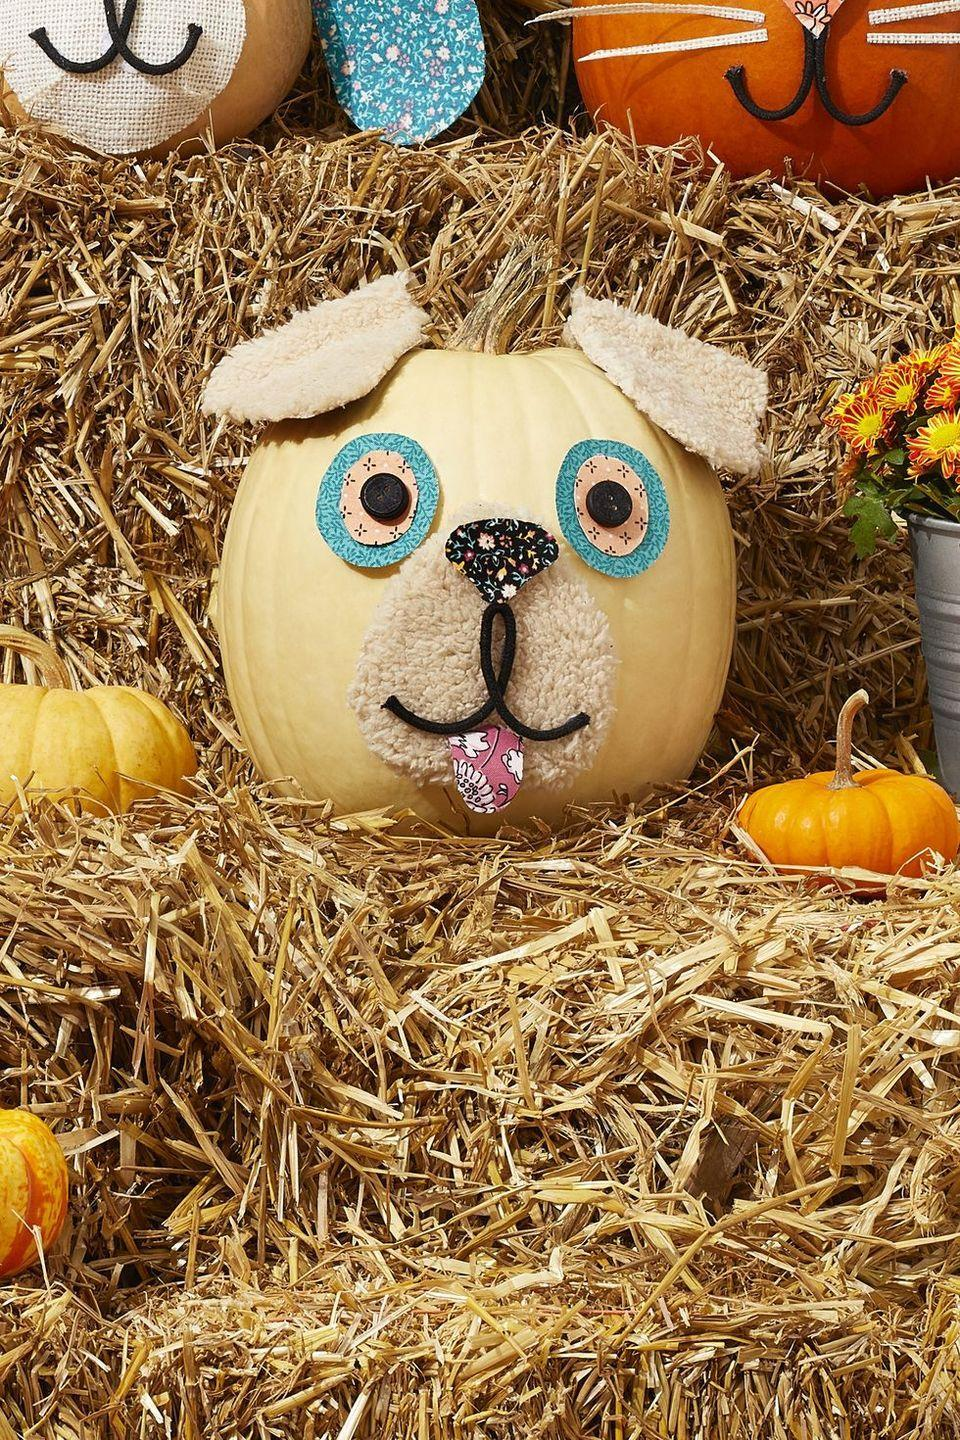 """<p>Does this sweet pooch really need an explanation? He's simply got to be part of your fall décor this year. Use pieces of fake sherpa fur for the ears and nose, and floral fabric for the rest of the pup. Black cotton cord or black yarn creates the mouth shape.</p><p><a class=""""link rapid-noclick-resp"""" href=""""https://go.redirectingat.com?id=74968X1596630&url=https%3A%2F%2Fwww.walmart.com%2Fsearch%2F%3Fquery%3Dfloral%2Bfabric&sref=https%3A%2F%2Fwww.thepioneerwoman.com%2Fhome-lifestyle%2Fdecorating-ideas%2Fg36664123%2Fwhite-pumpkin-decor-ideas%2F"""" rel=""""nofollow noopener"""" target=""""_blank"""" data-ylk=""""slk:SHOP FLORAL FABRIC"""">SHOP FLORAL FABRIC</a></p>"""